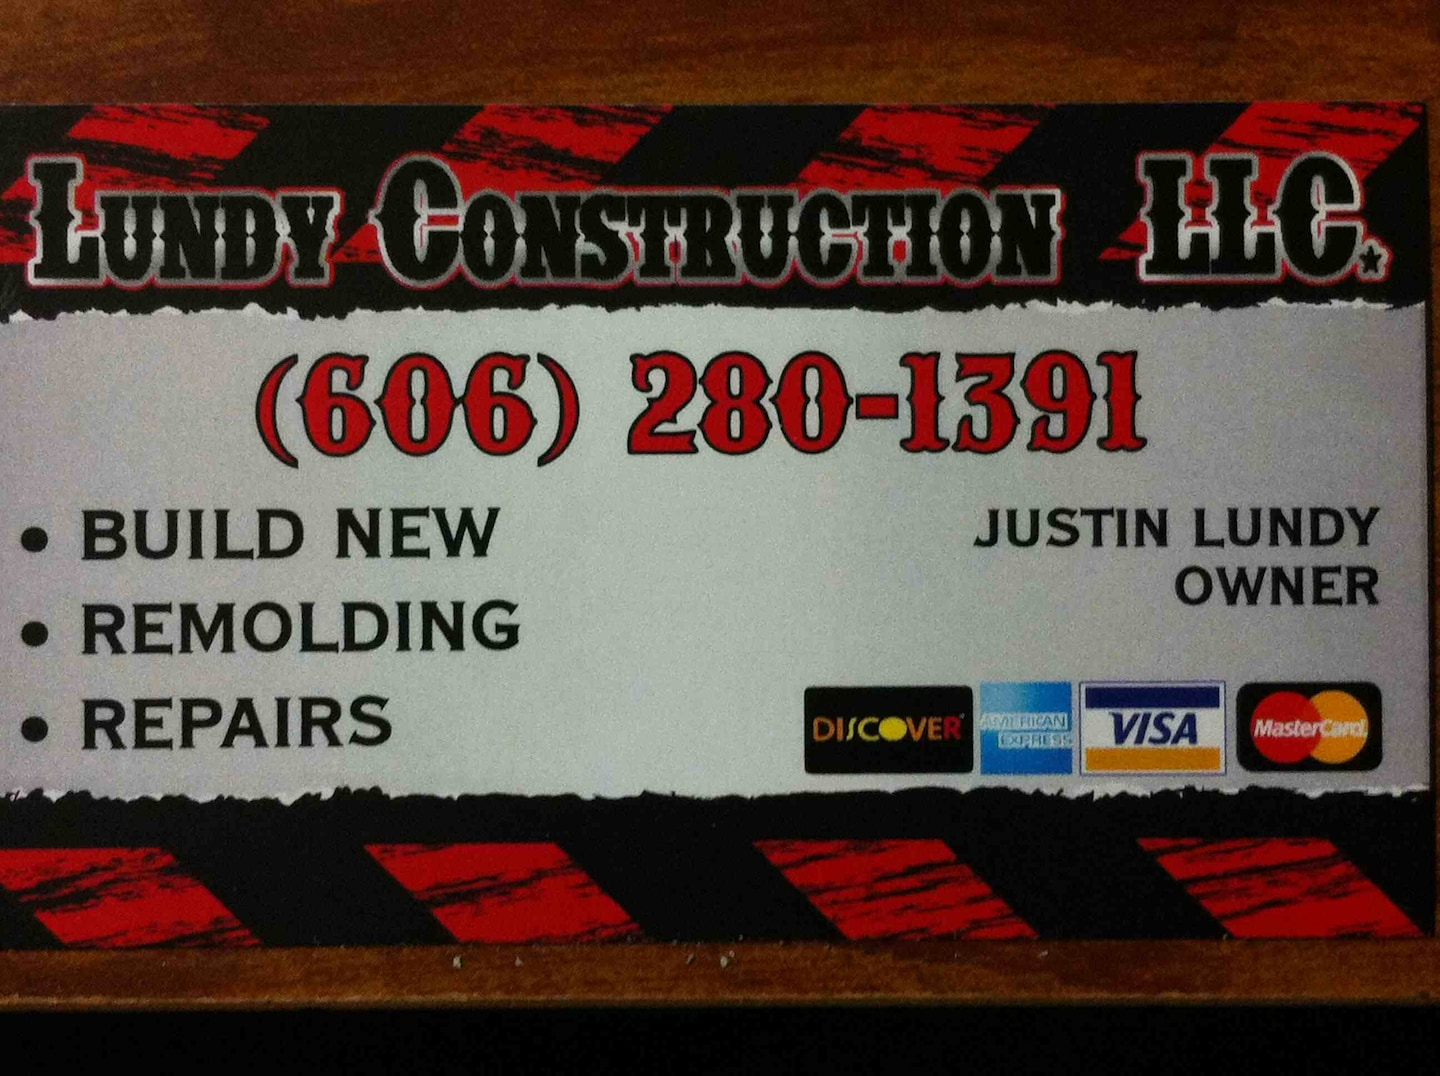 Lundy Construction, LLC